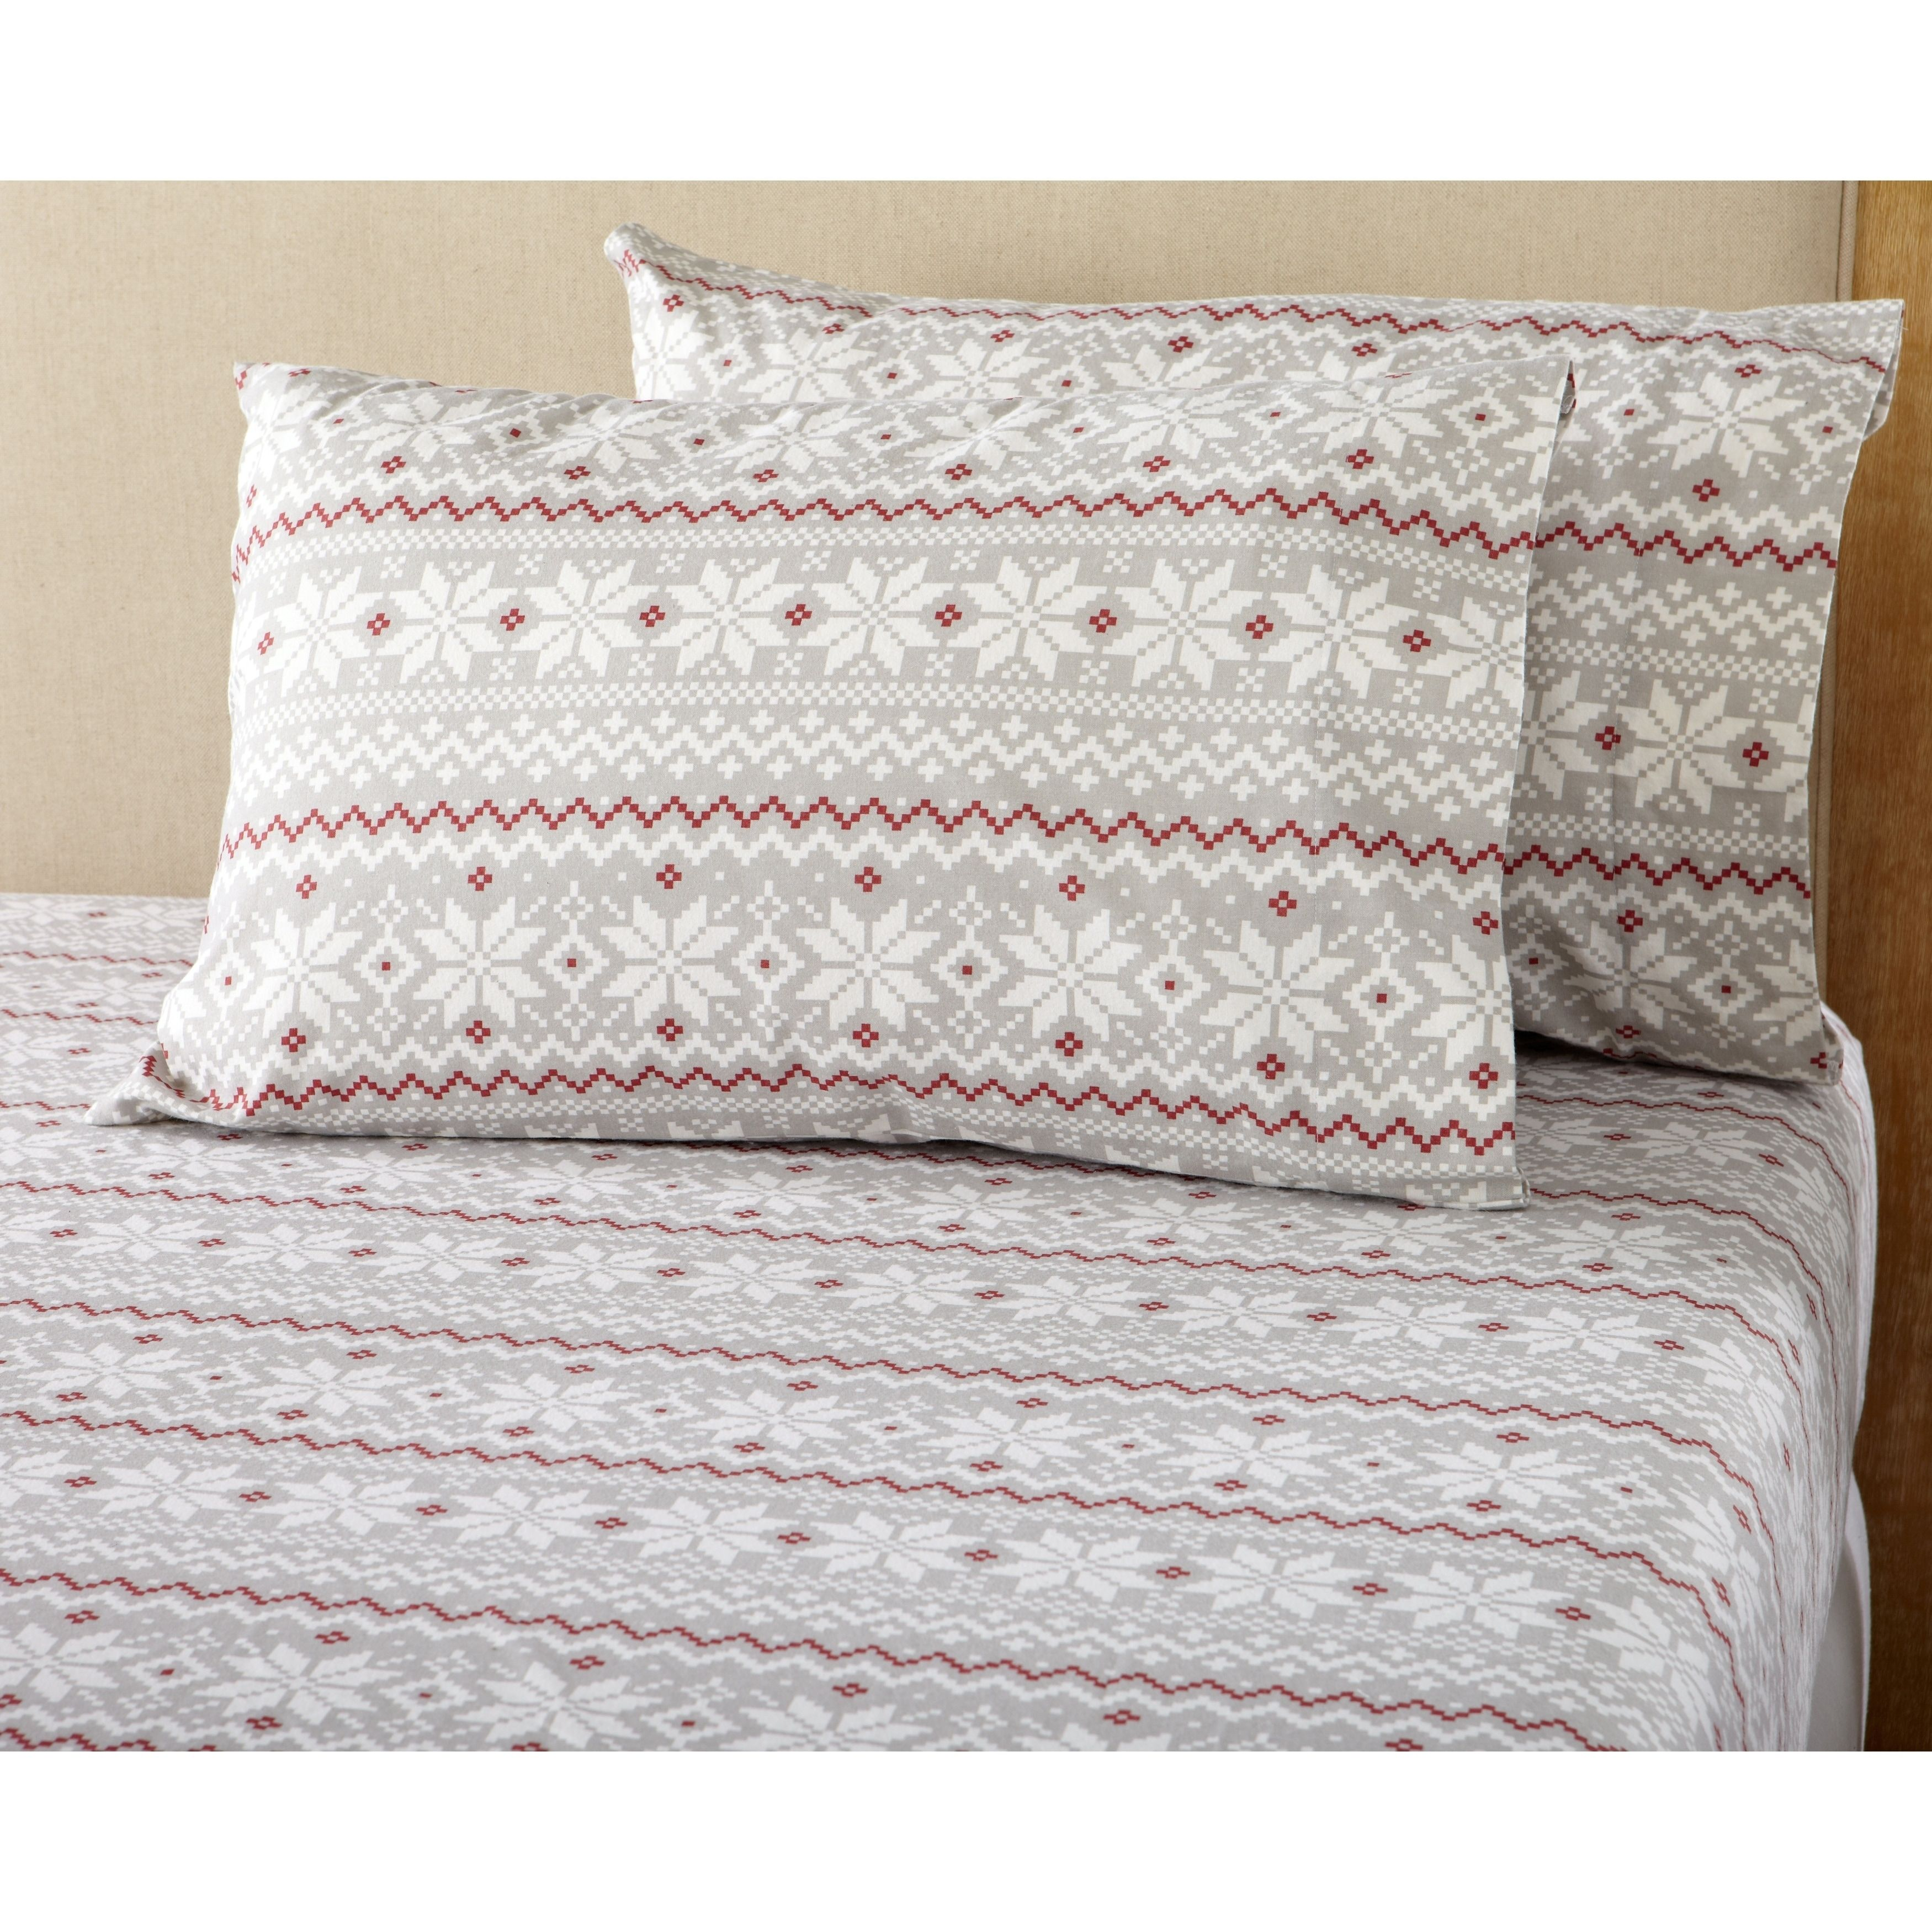 Red flannel sheets  Stratton Collection Super Soft Printed  Cotton Flannel Sheet Set